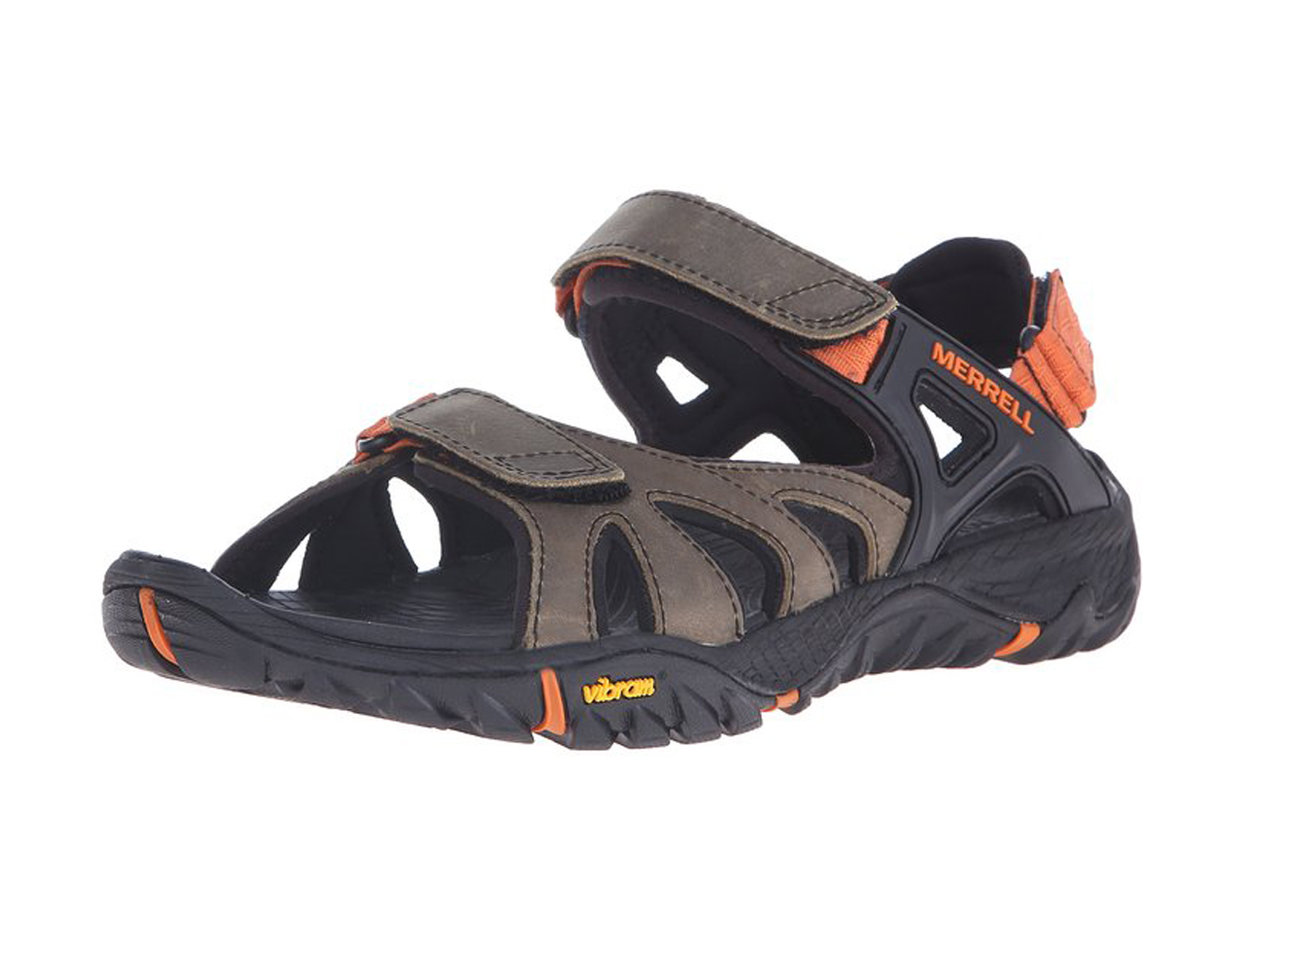 Best Hiking Sandals For Men Travel Leisure